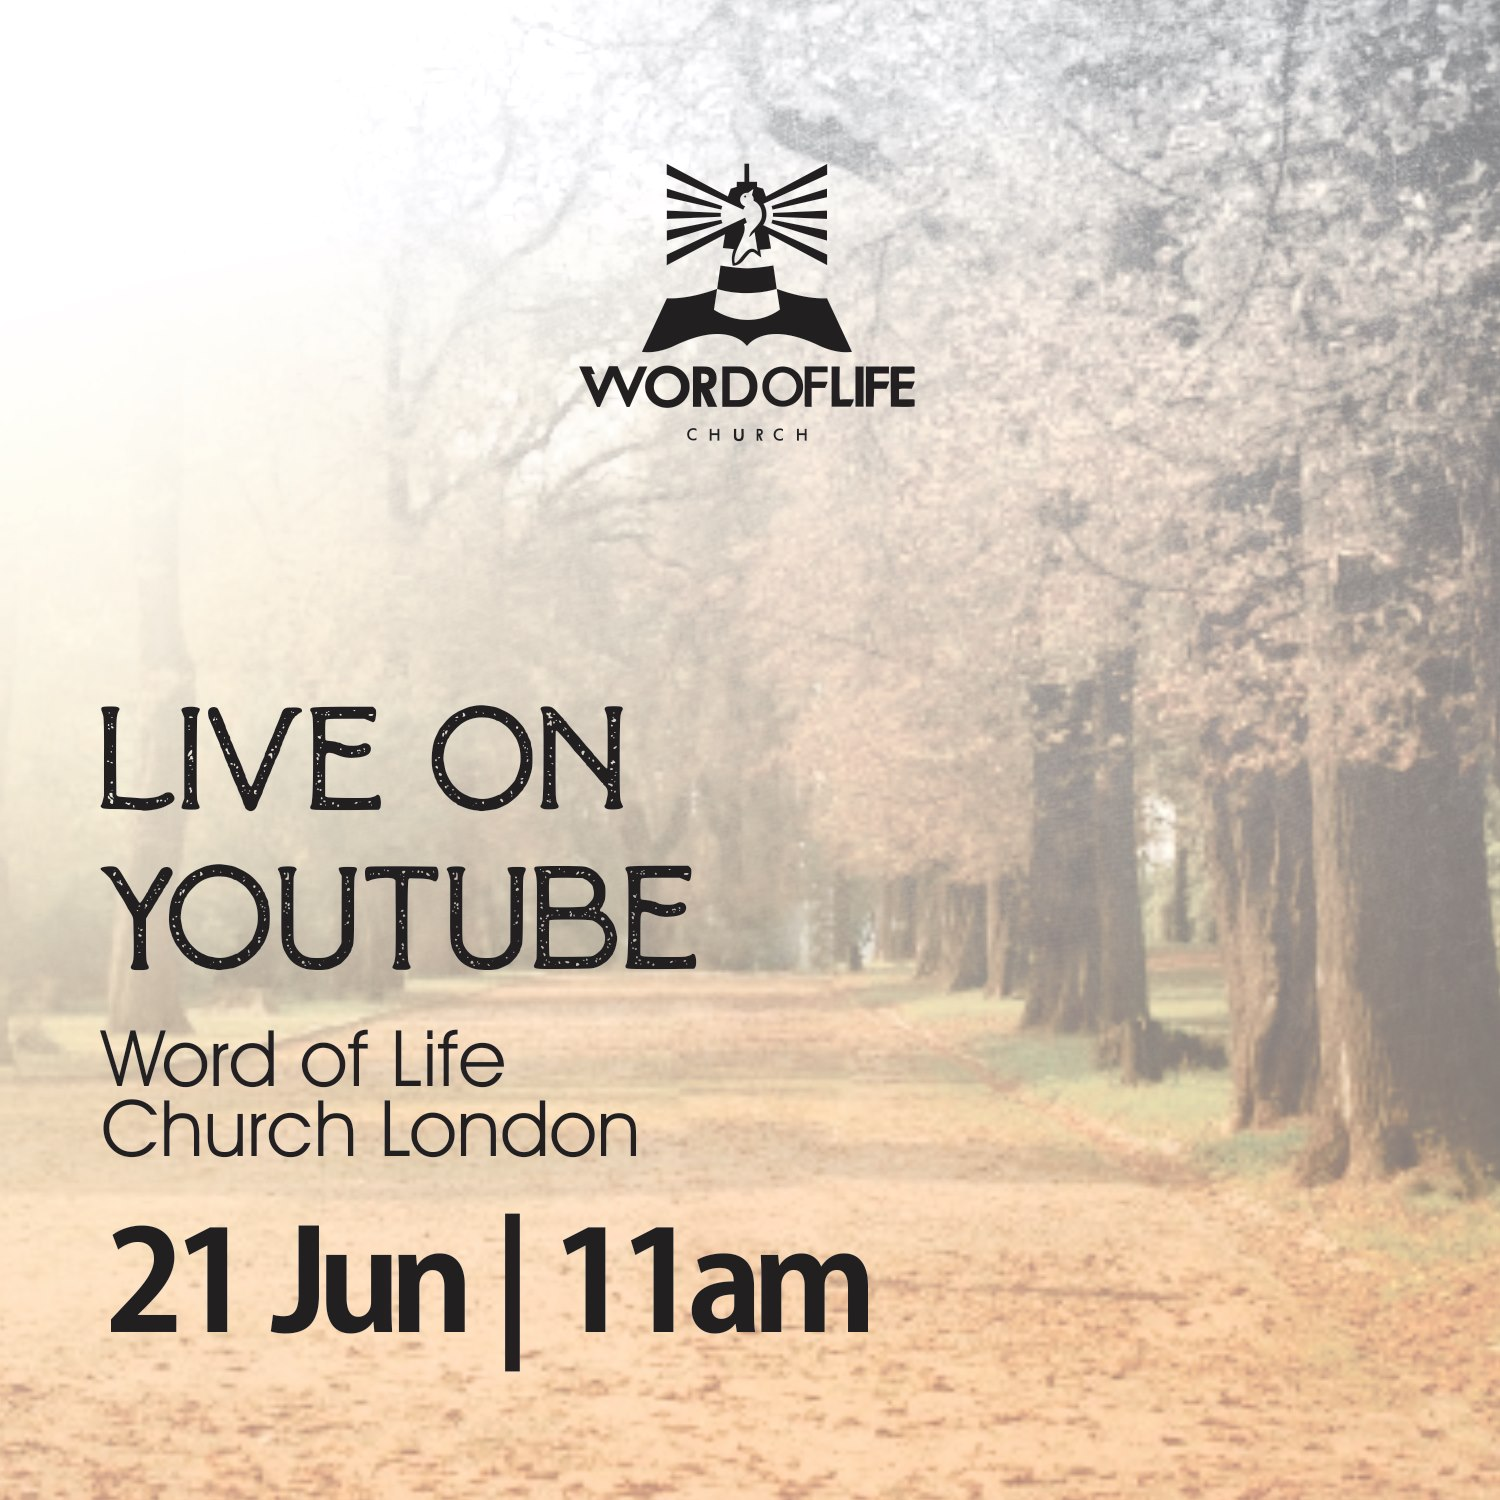 Word of Life Church London - Sunday Service Invitation Join Us On Youtube